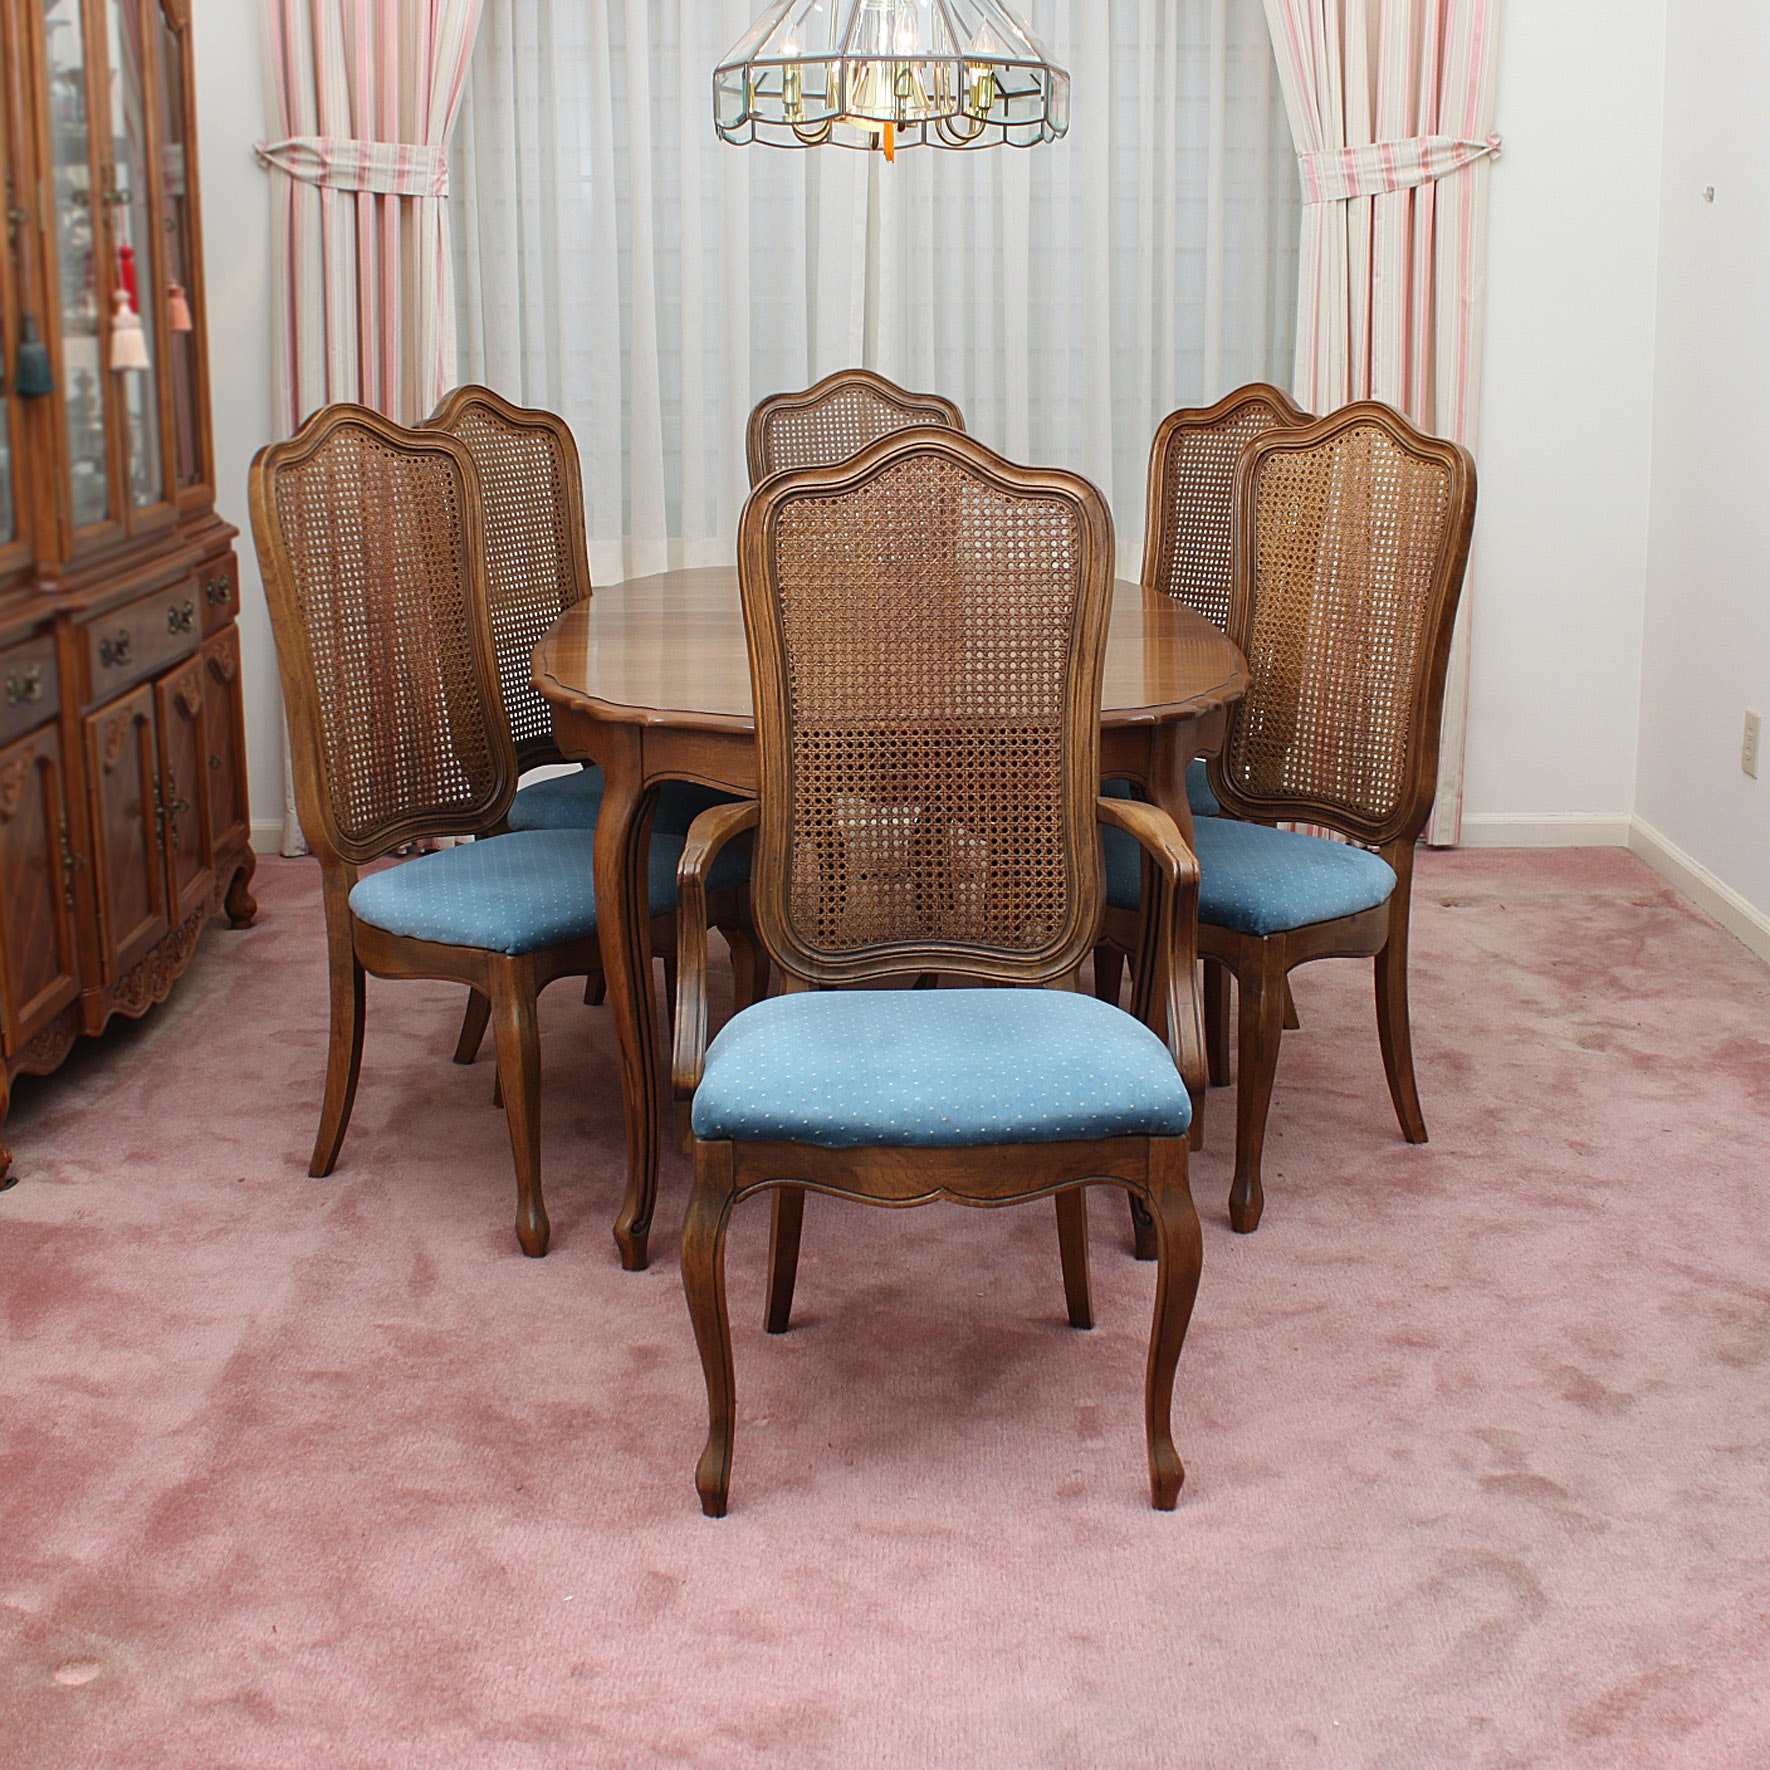 Thomasville Dining Room Table with Cane Back Chairs